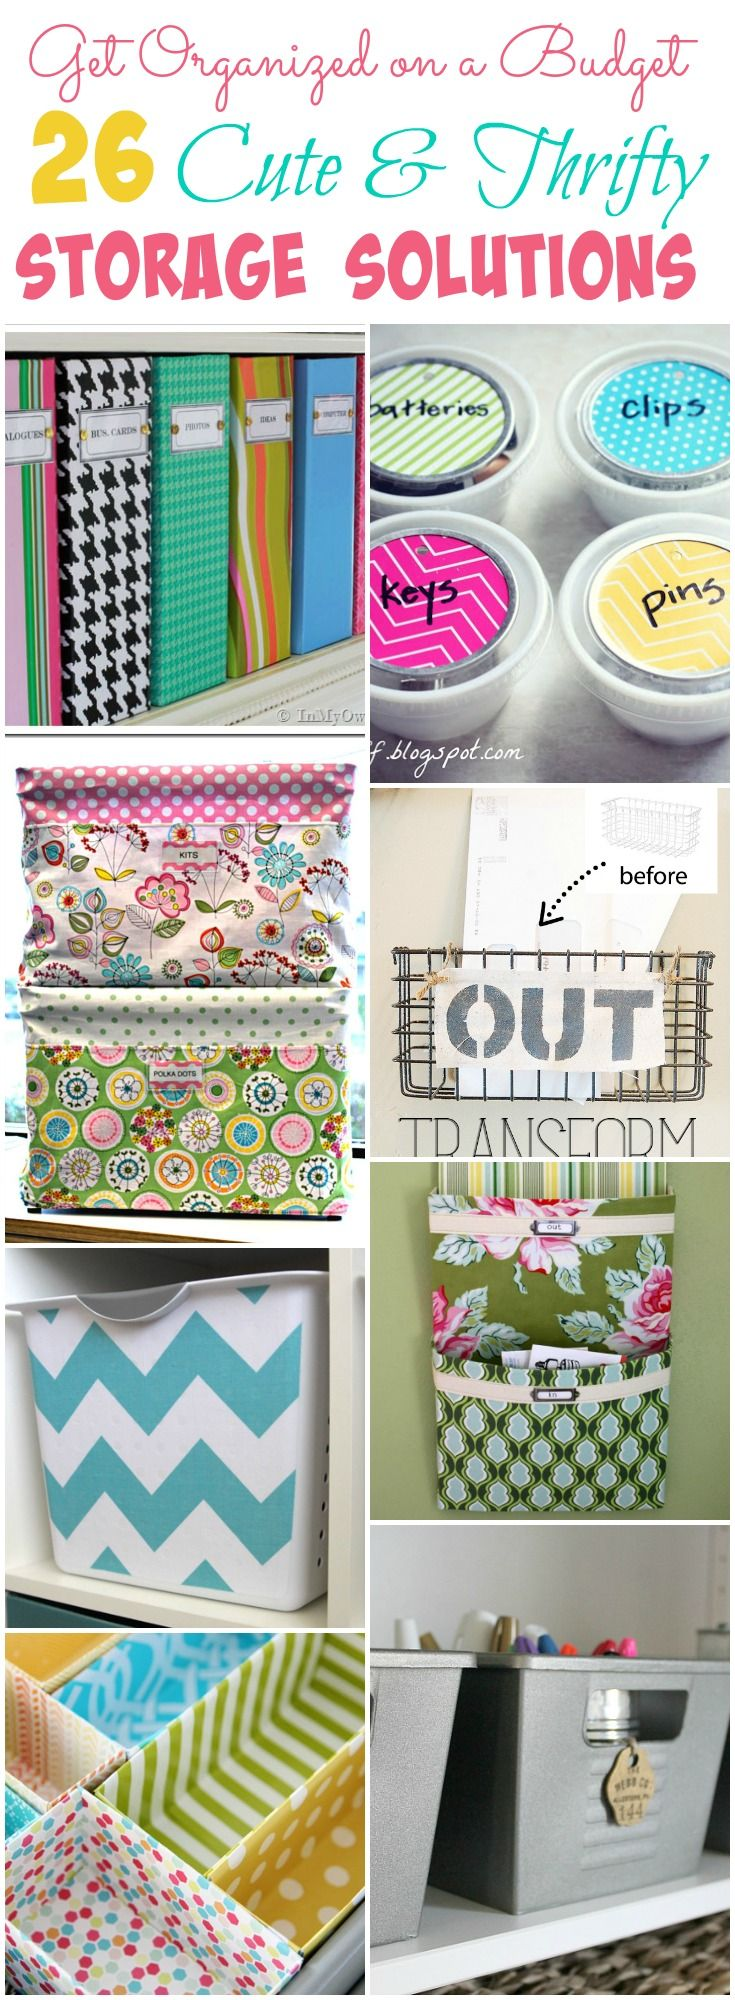 Get Organized on a Budget with these 26 cute and thrifty storage solution ideas at thehappyhousie.com